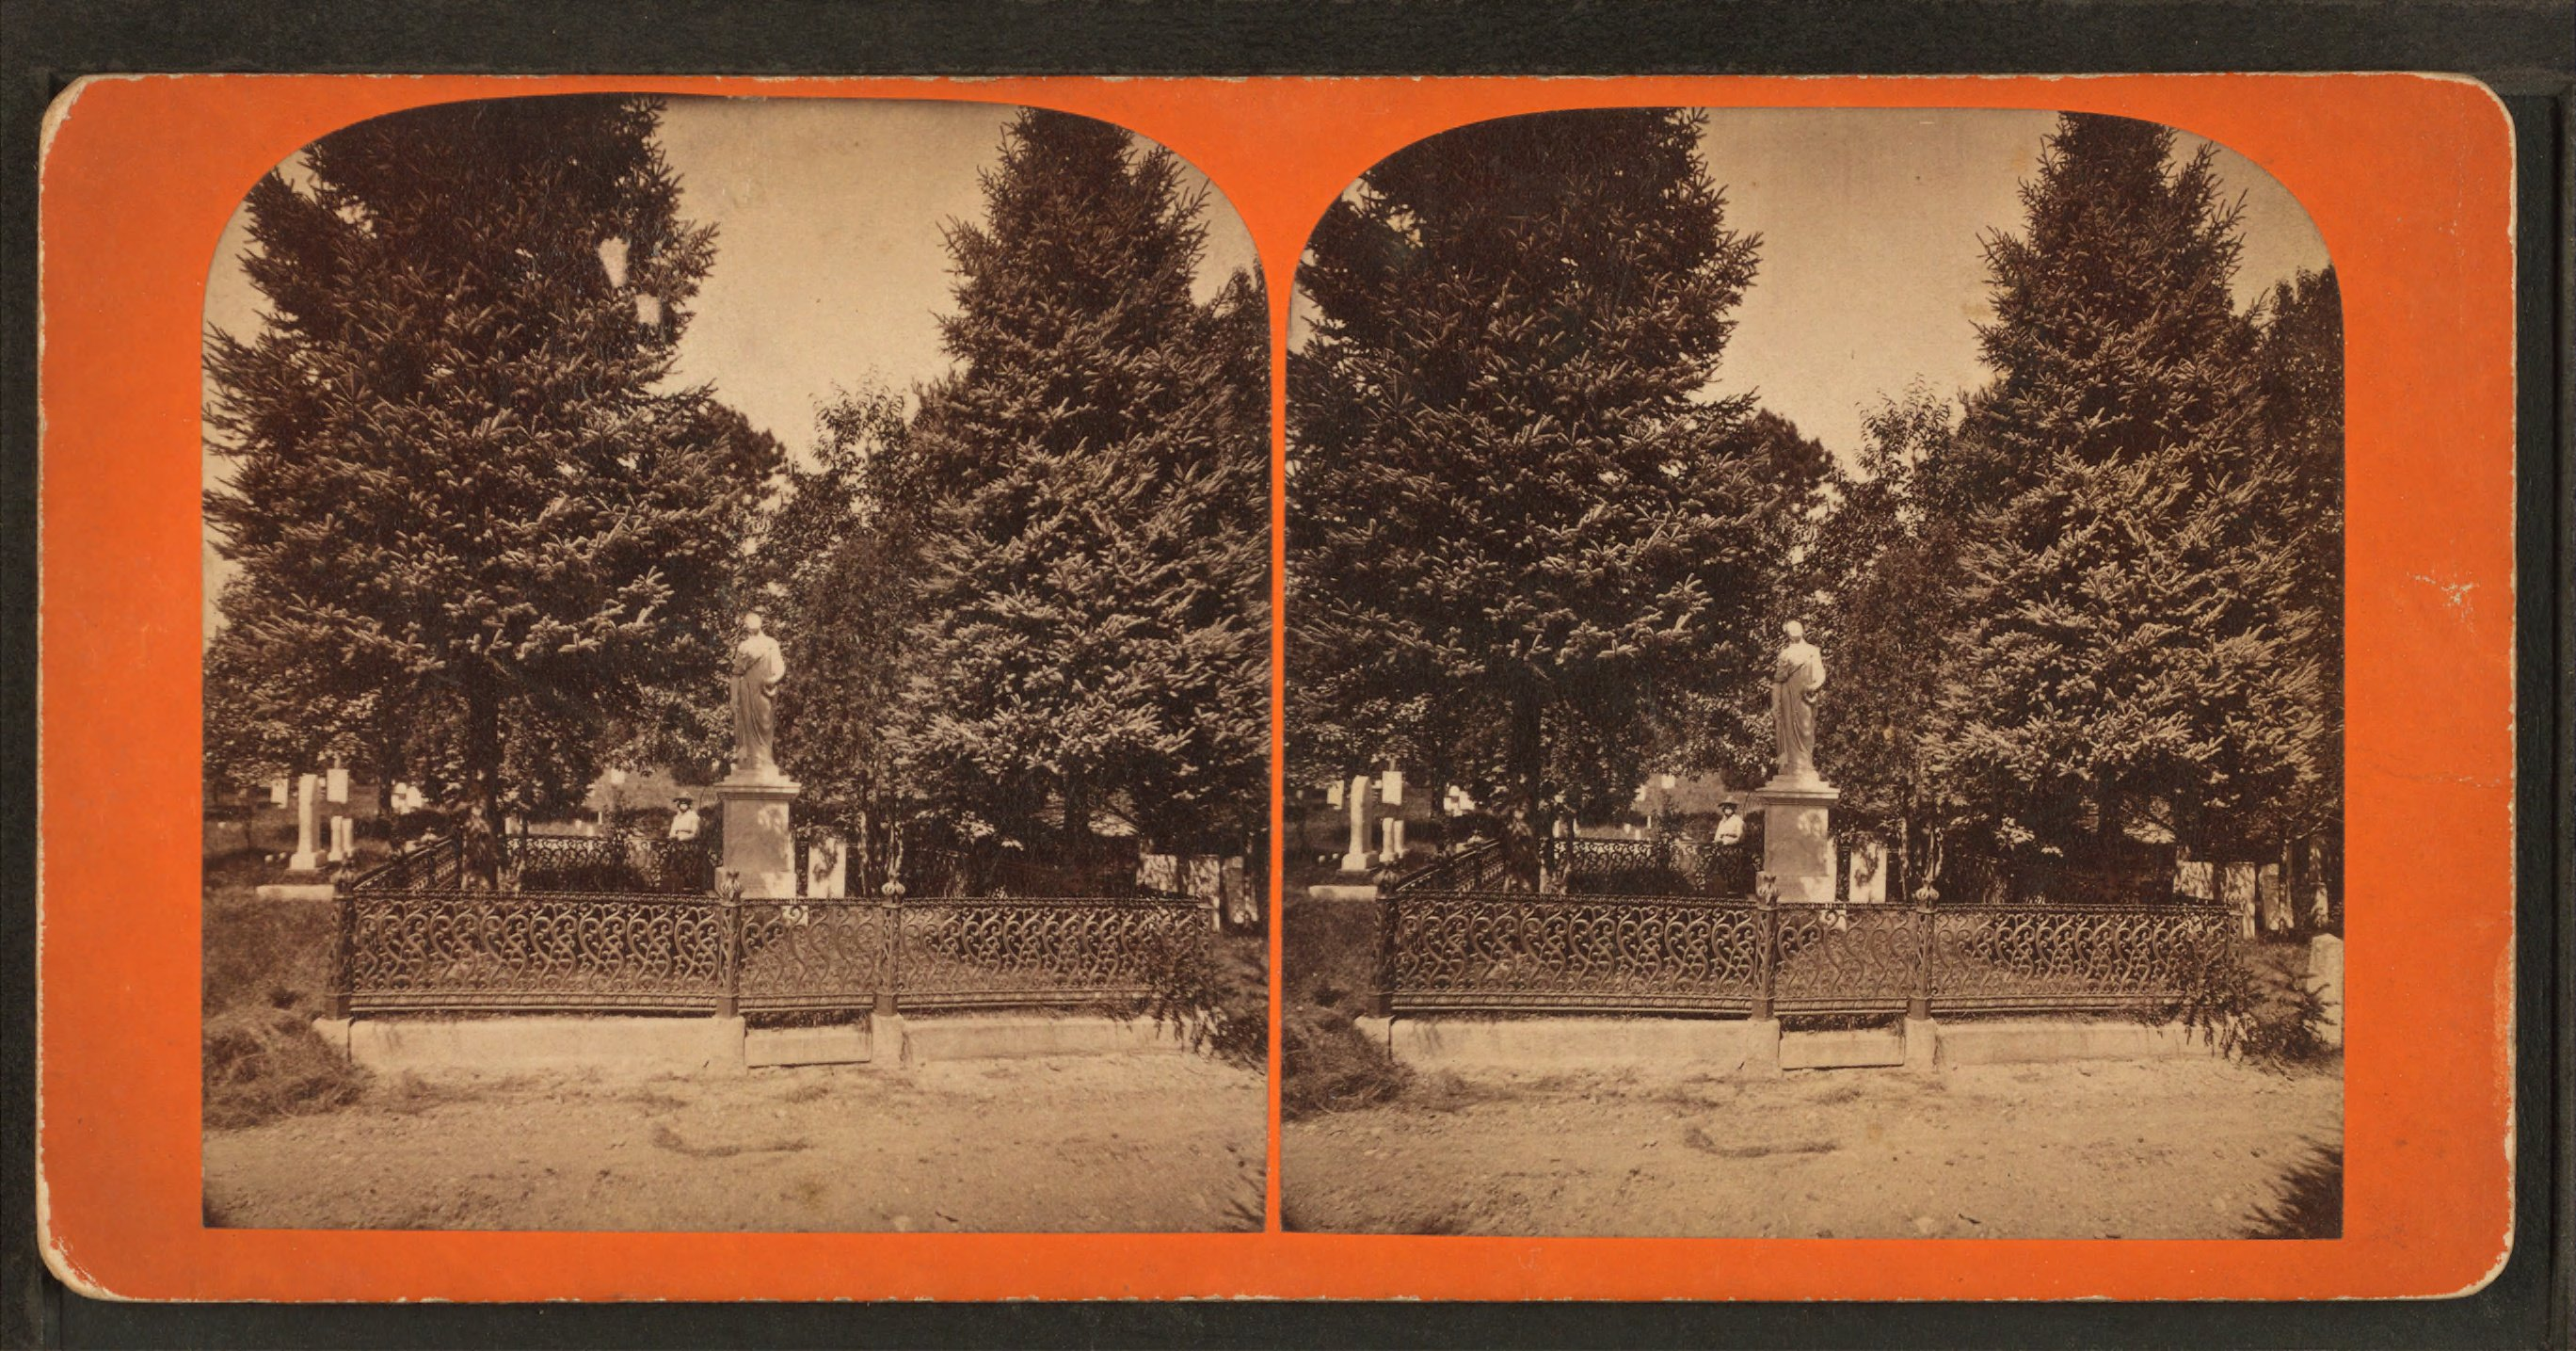 Swan Point Cemetery, a stereoptic view from the 1870s.